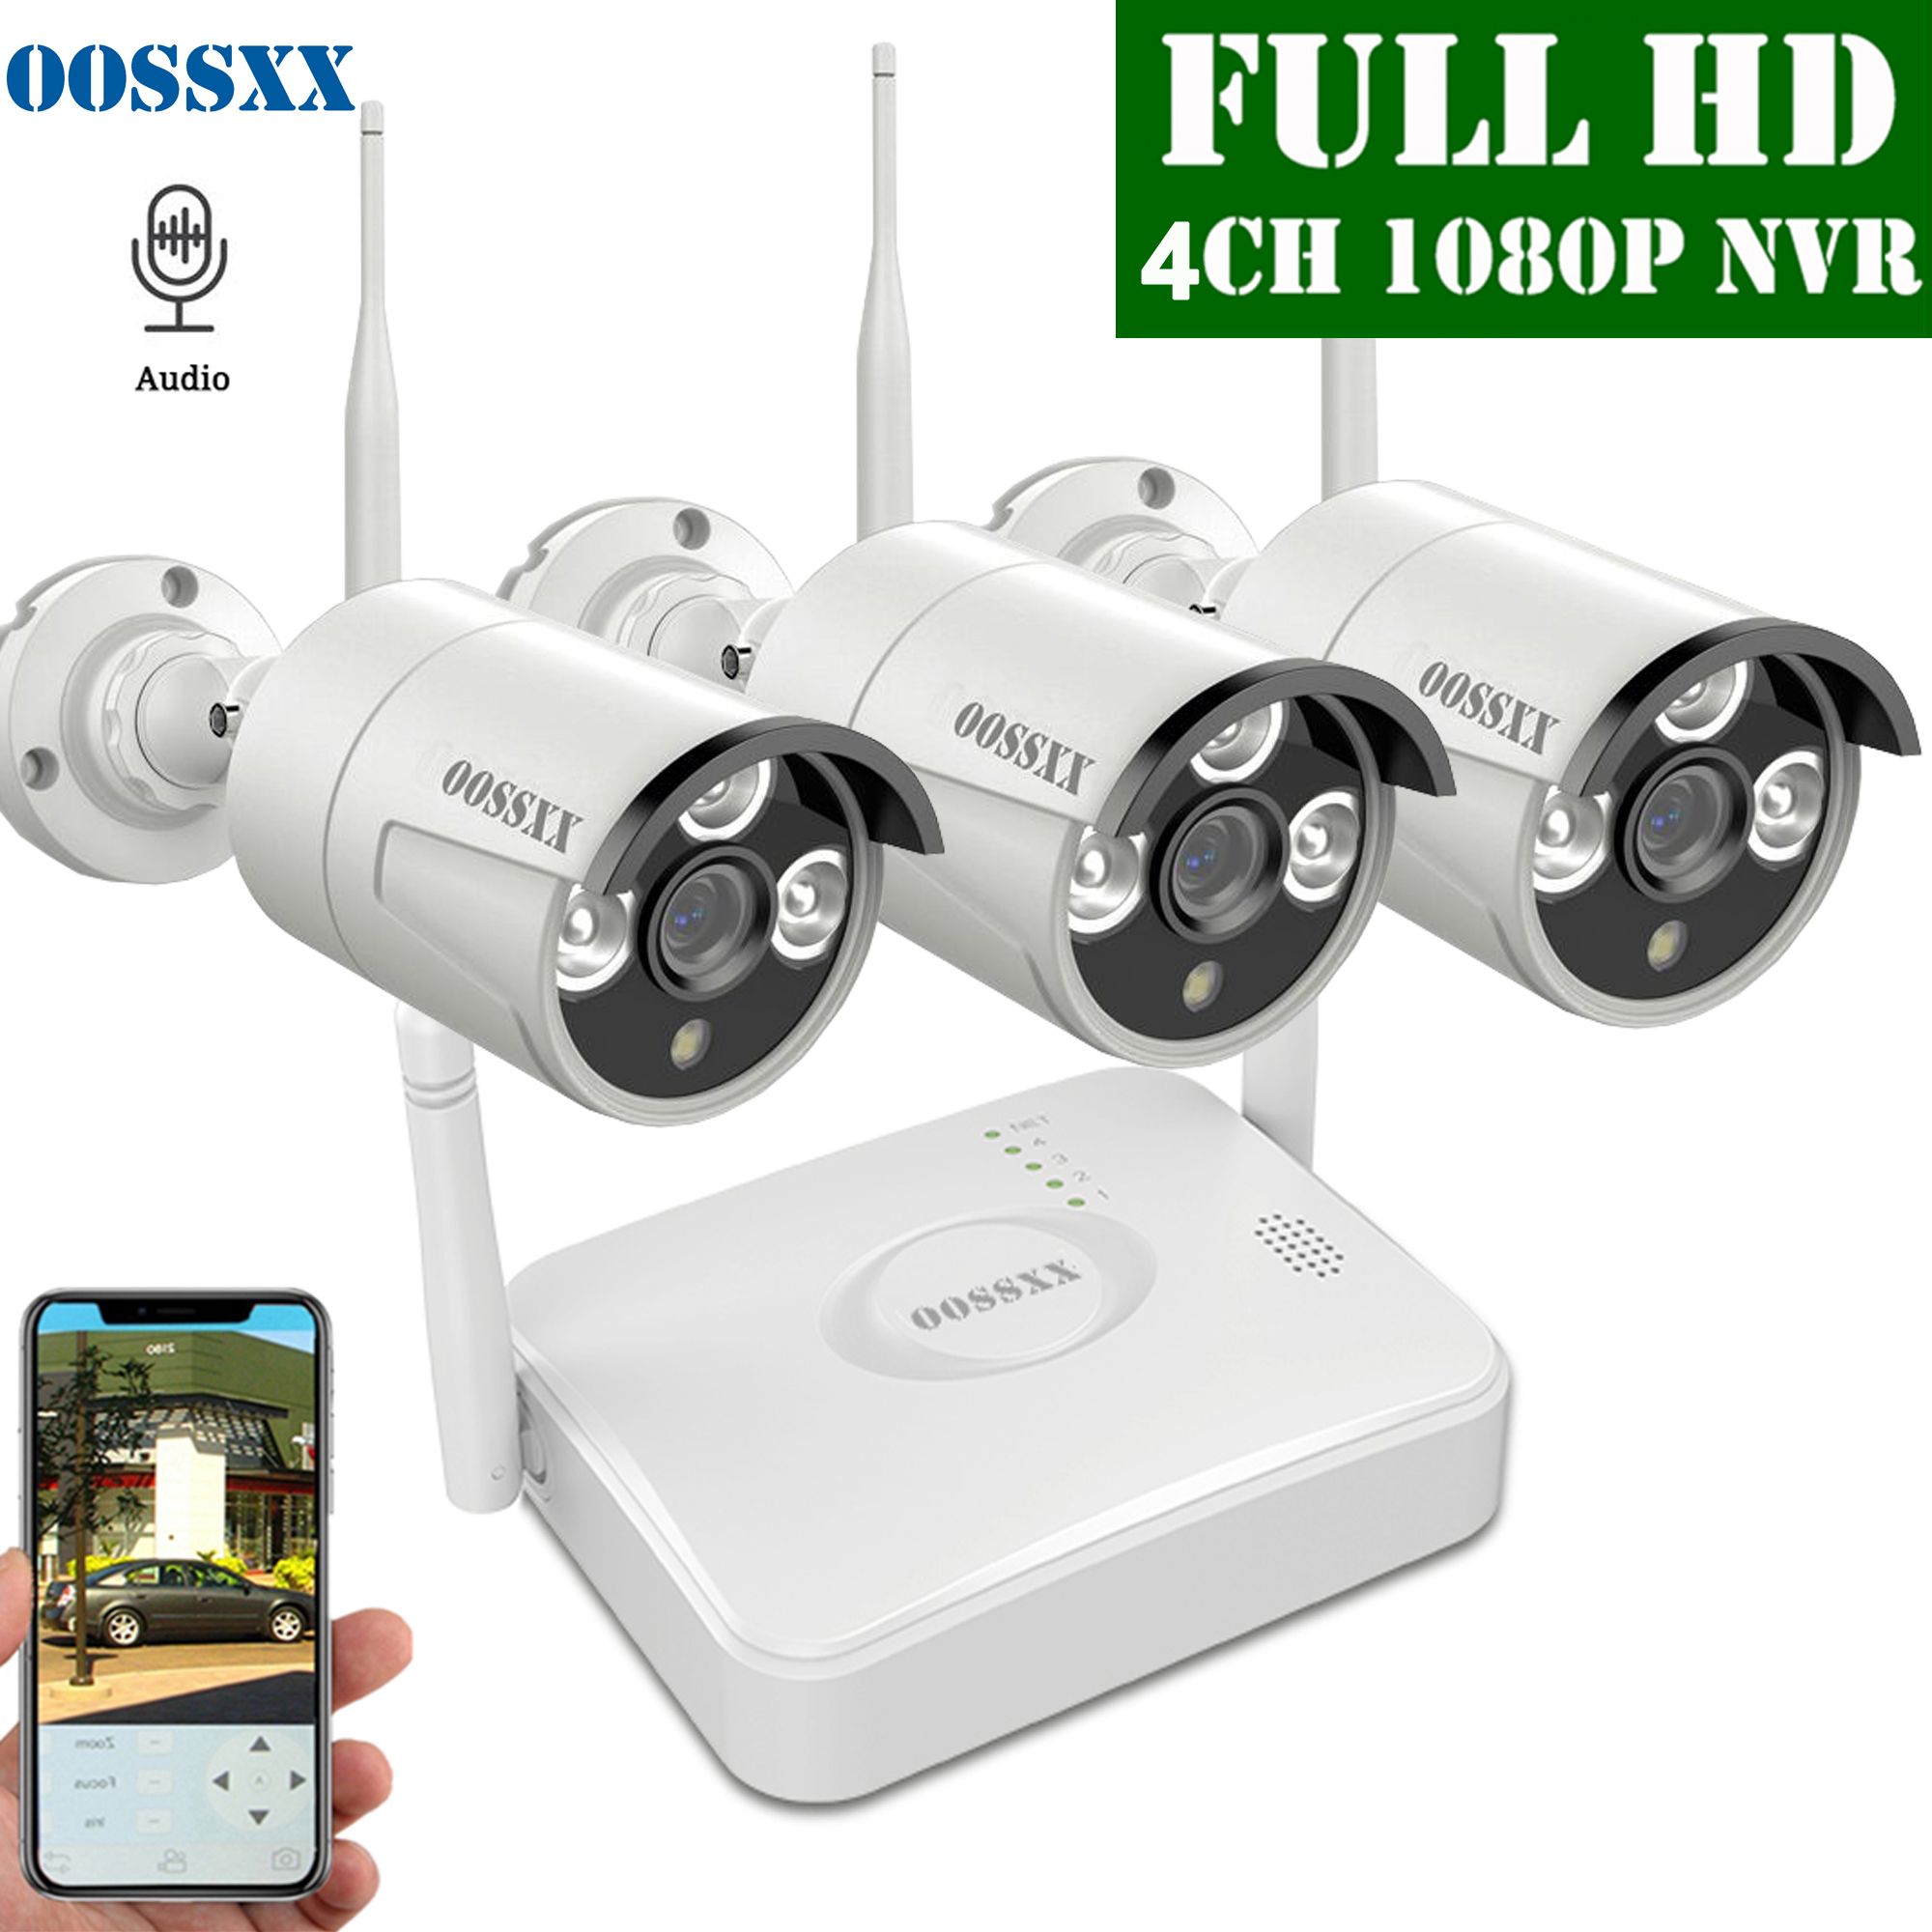 OOSSXX 4CH Wireless NVR Kit CCTV Camera System 3pcs 1080P 2.0MP Outdoor Audio IP Security Camera Wifi Video Surveillance System